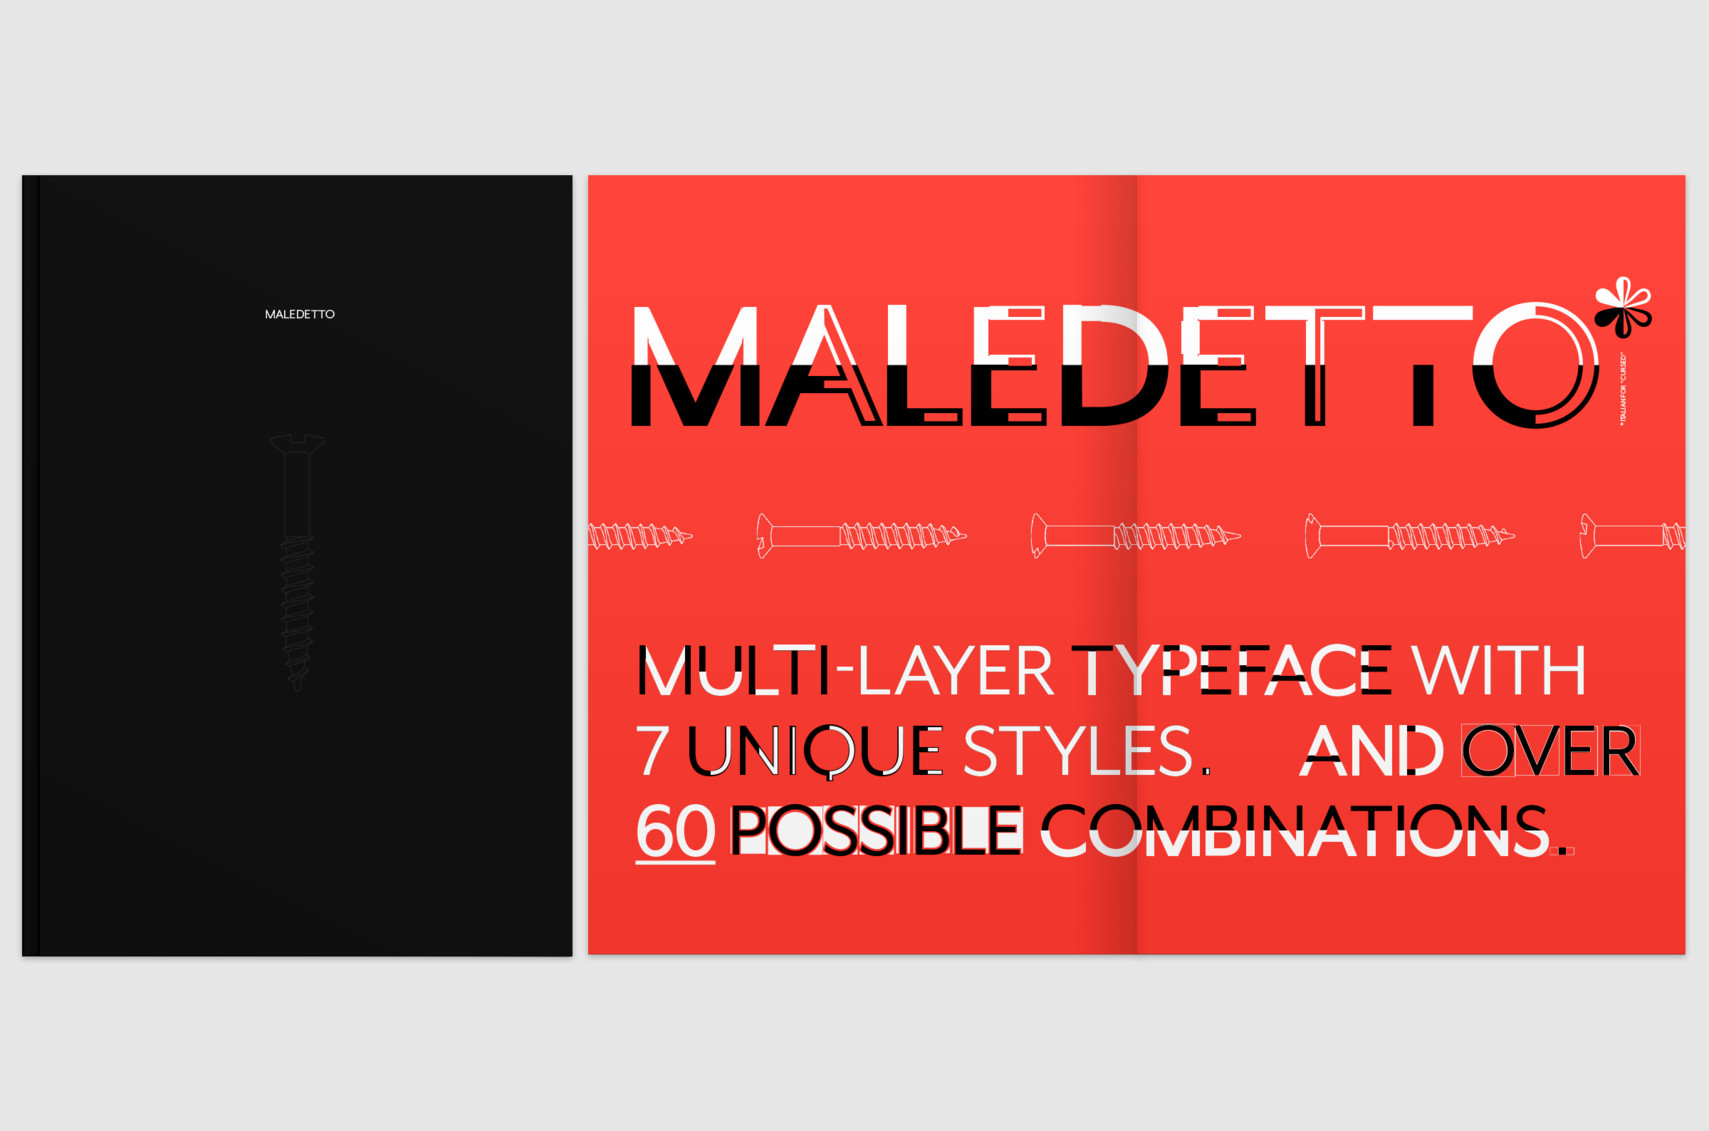 Maledetto_Cover_Spread.jpg